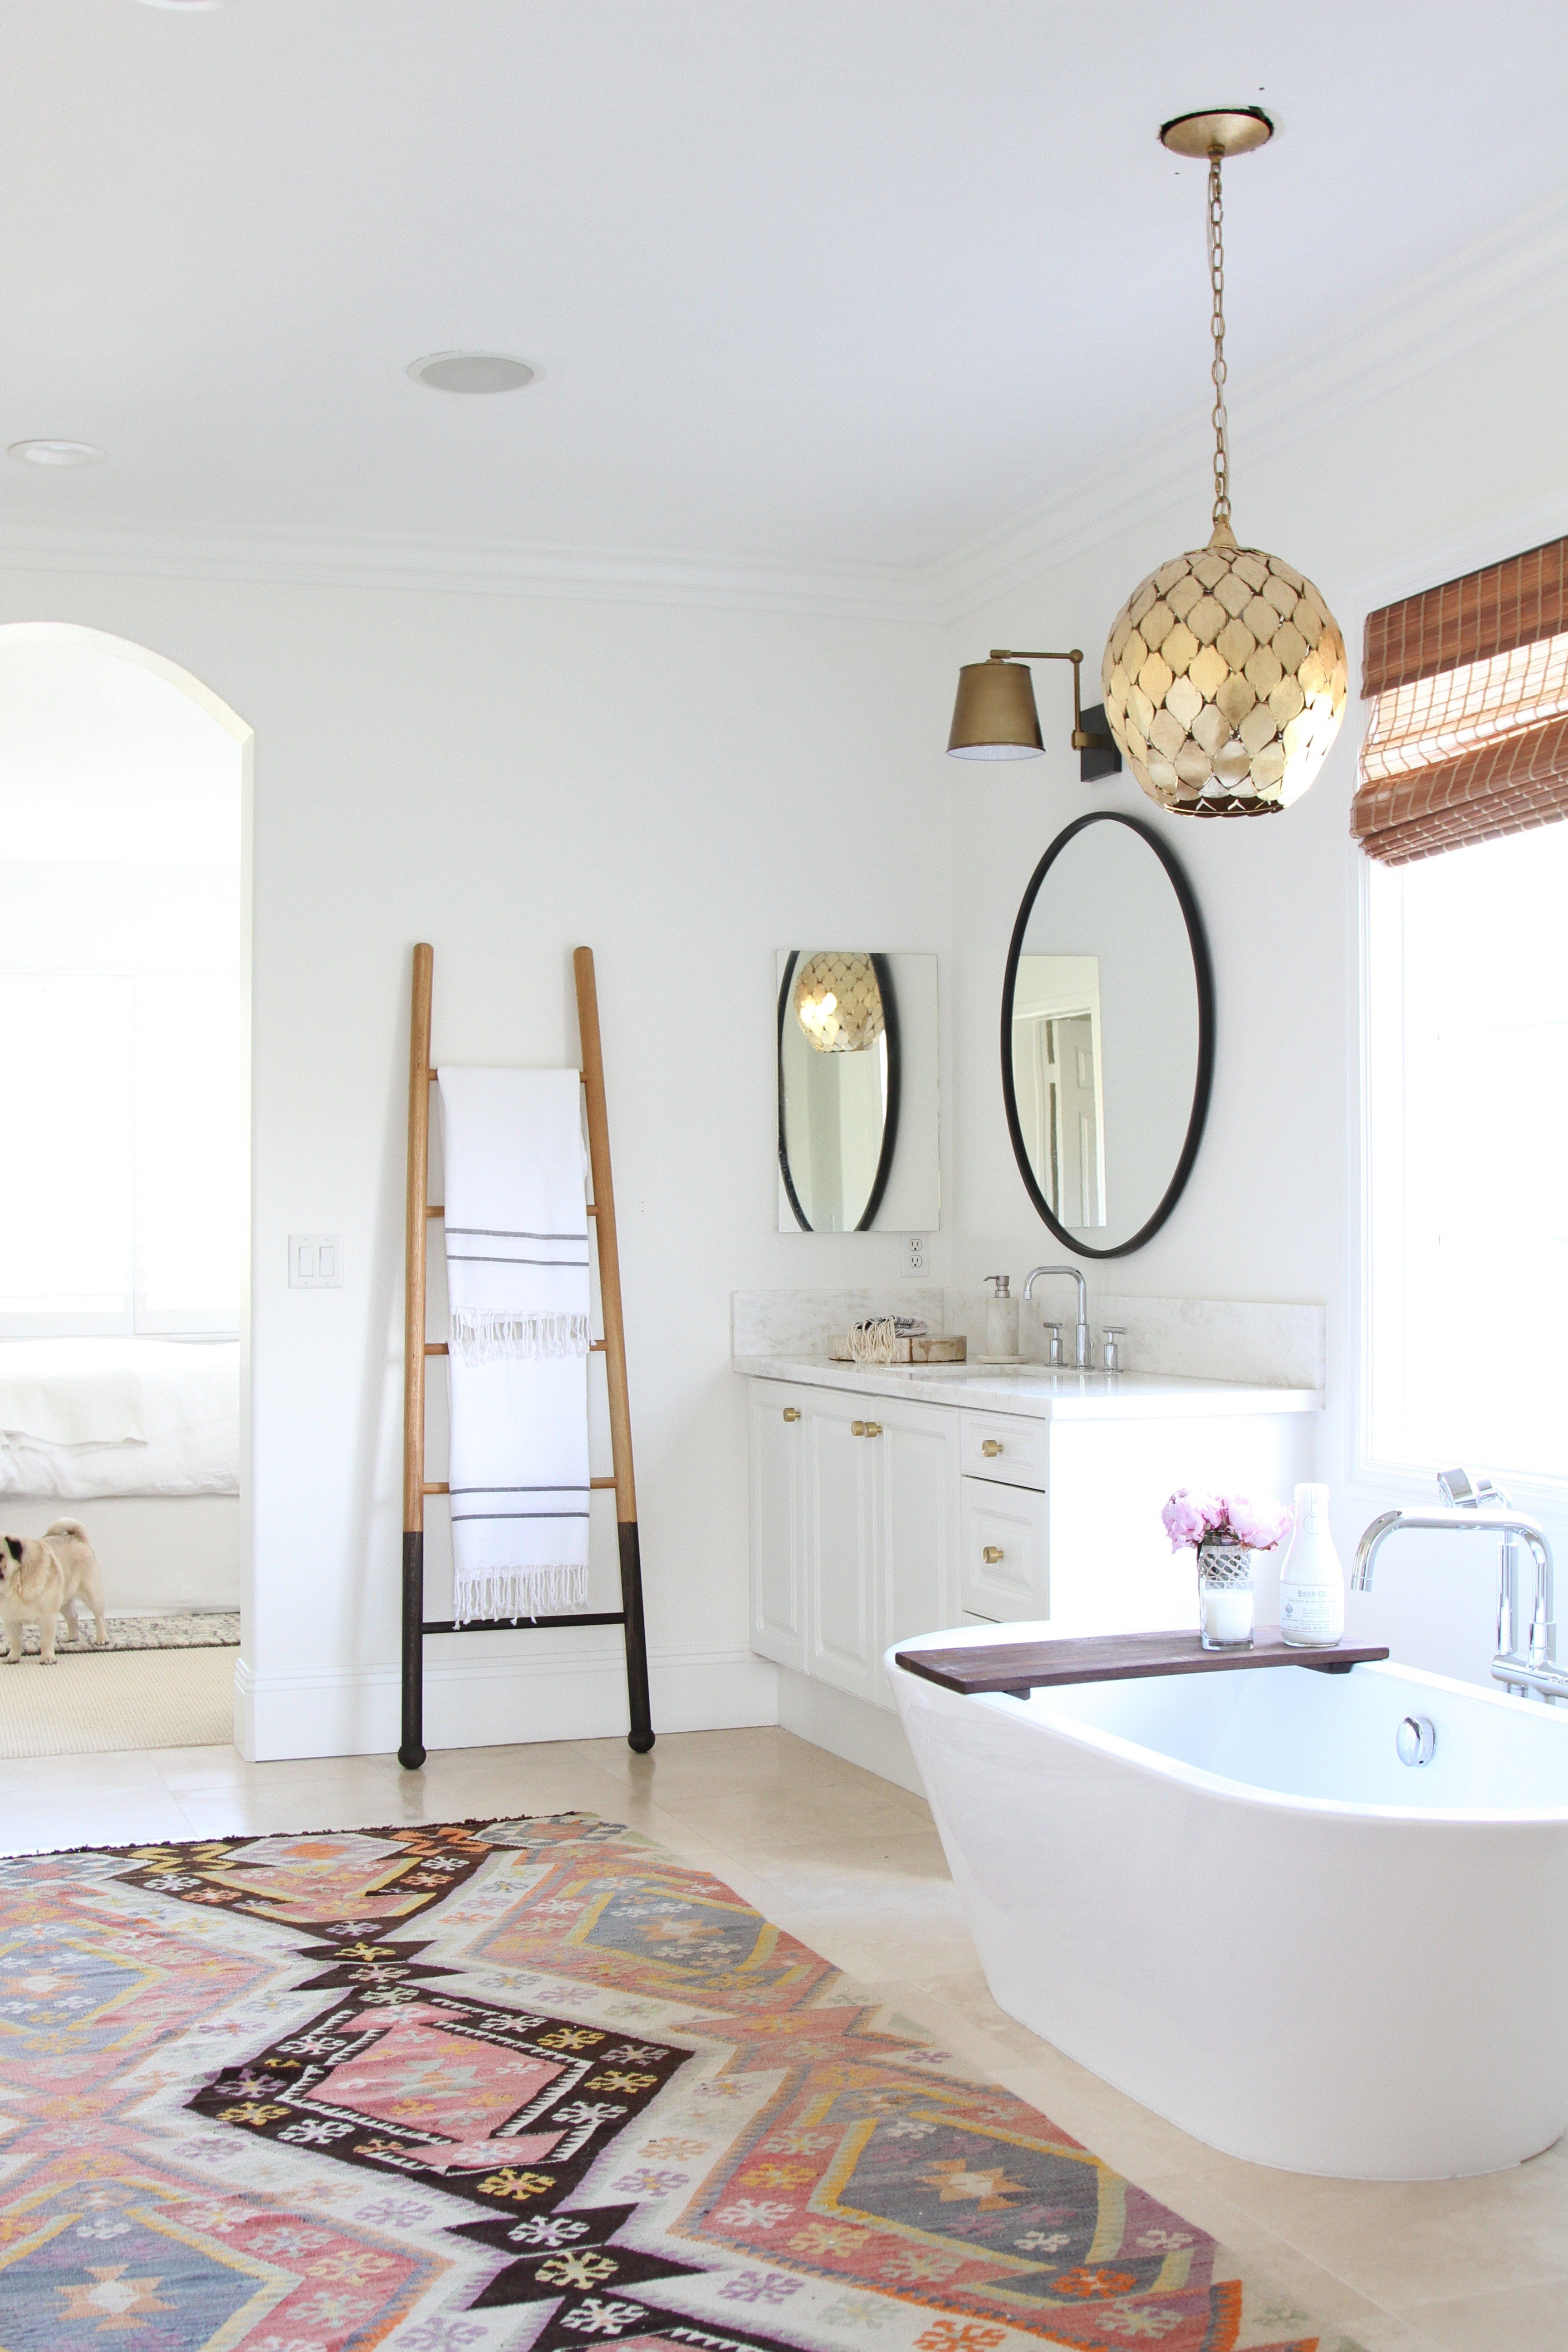 4 Reasons To Decorate With Rugs Outside Your Living Room Bathroom Trends Bathroom Inspiration Modern Boho Bathroom [ 5184 x 3456 Pixel ]